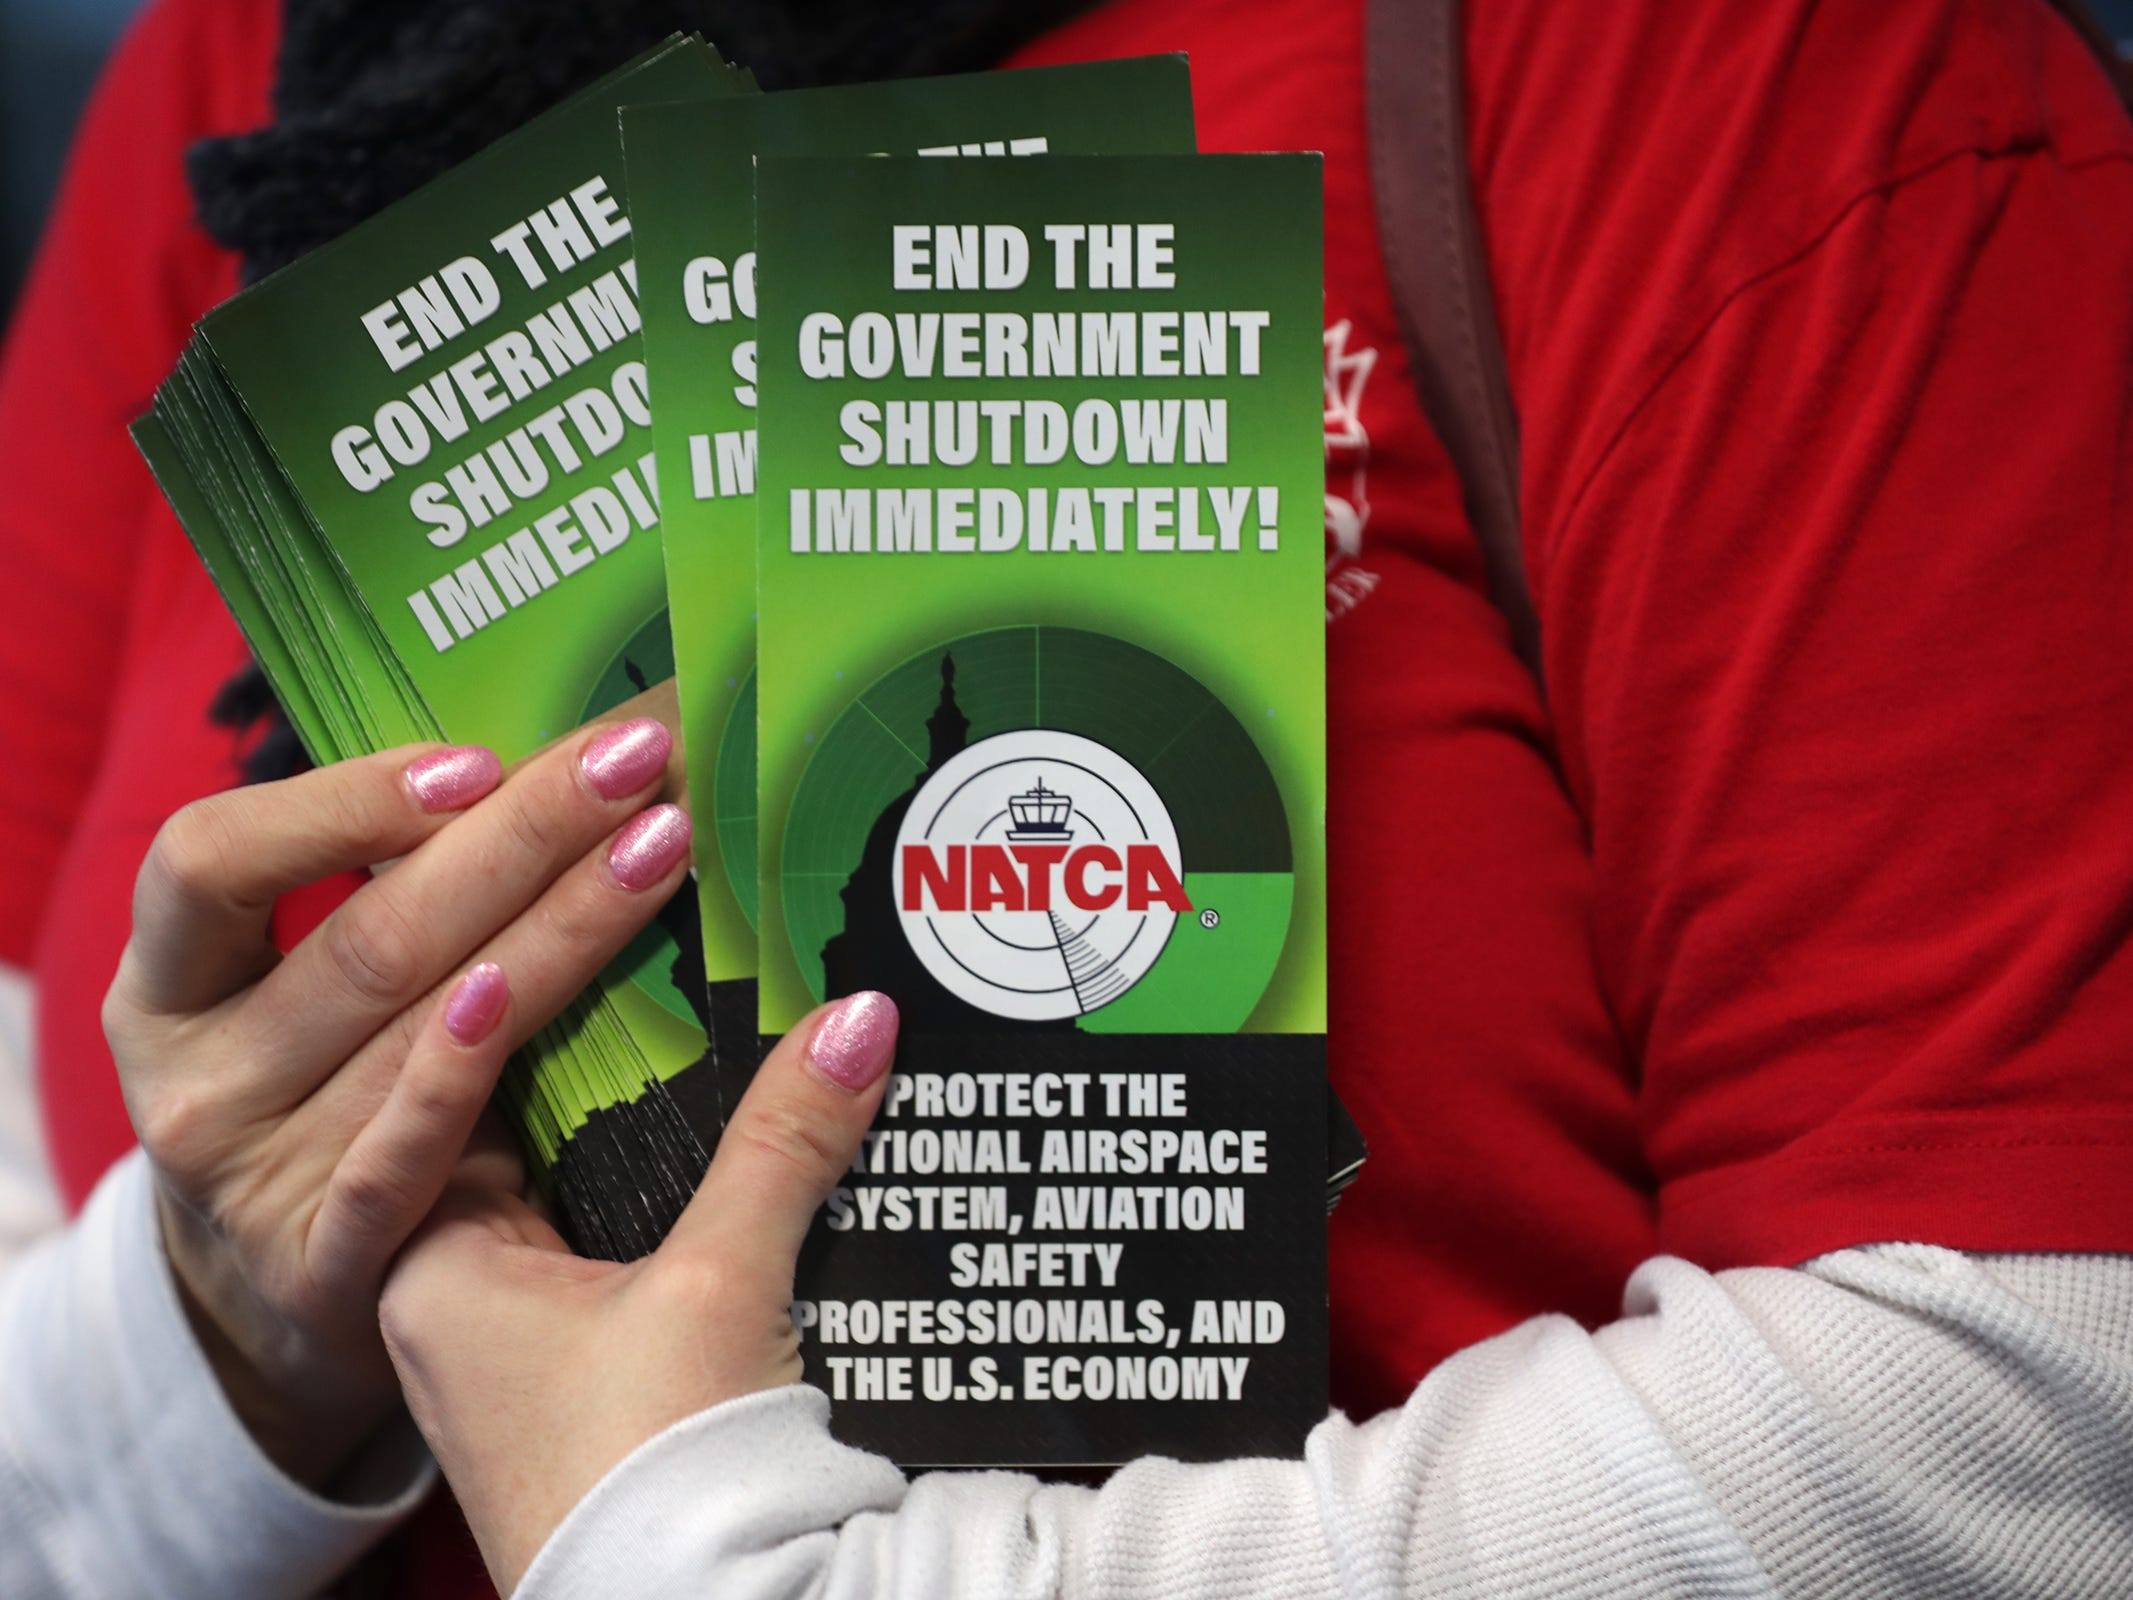 Pamphlets from the NATCA are given to travelers at the Indianapolis International Airport, Tuesday, Jan. 15, 2019.  Members of the National Air Traffic Controllers Association (NATCA) handed out the pamphlets to travelers to ask for the end of the government shutdown and to list ways the shutdown has affected the aviation safety.